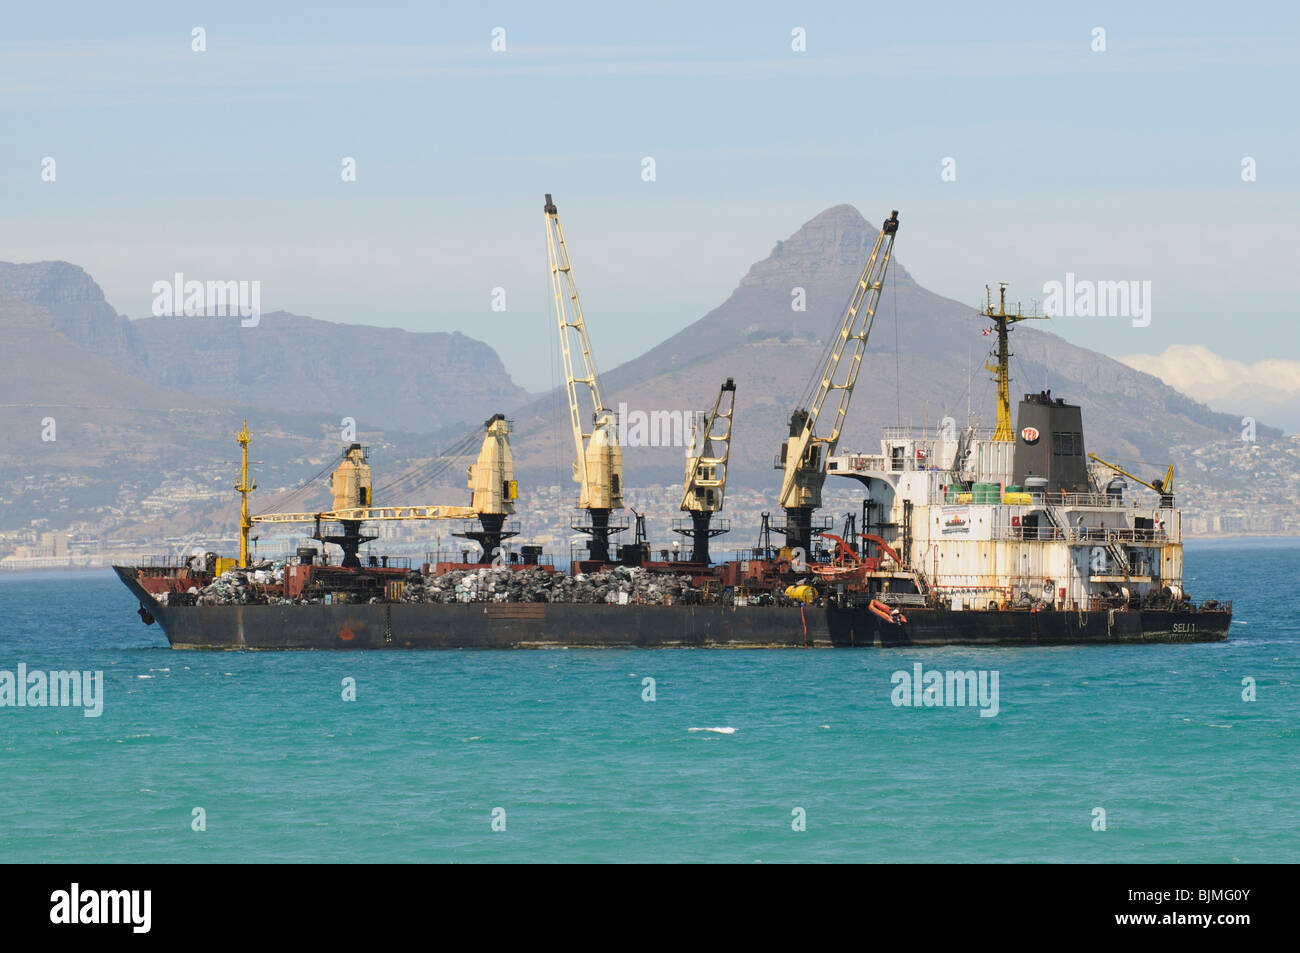 The Seli 1 a small bulk carrier lays aground in Table Bay off Cape Town South Africa. Close to the beach at Bloubergstrand - Stock Image